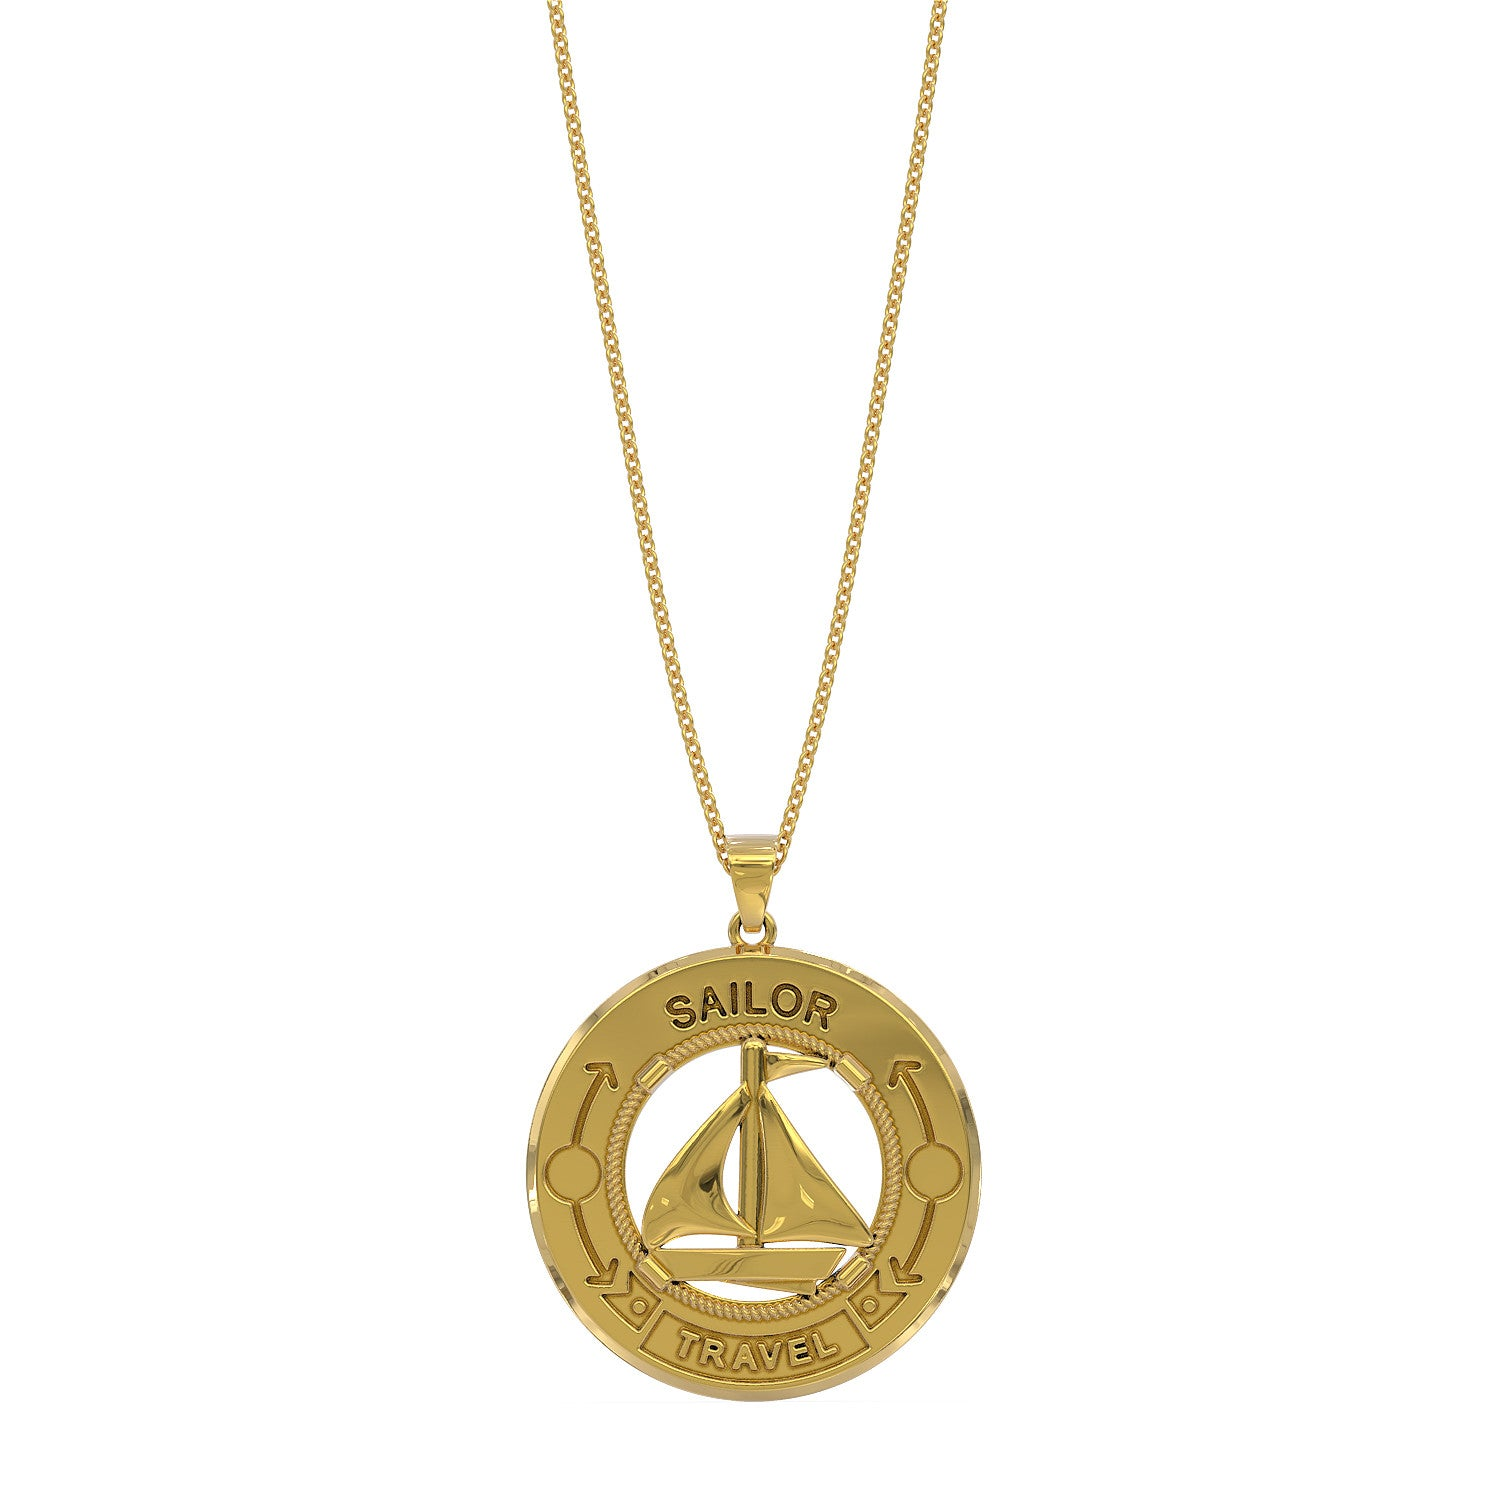 Sailor Get Ocean Travel Necklace